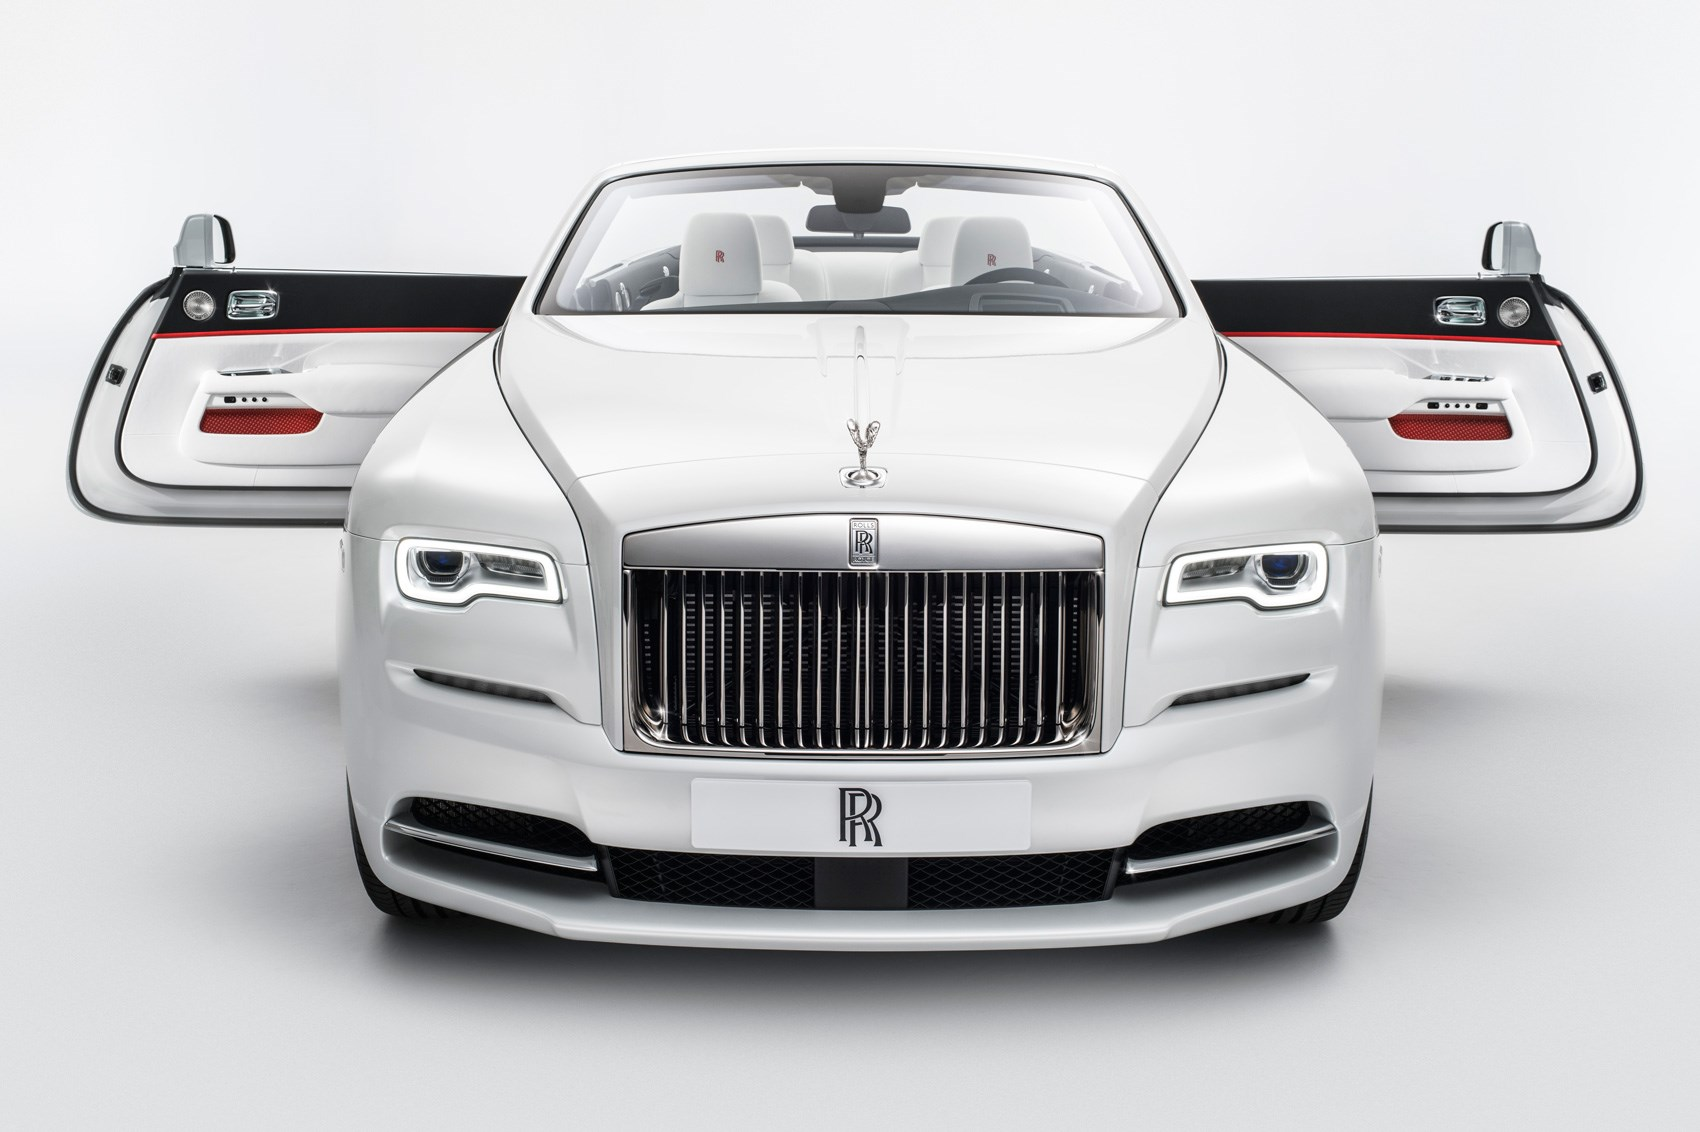 ve new Dawn: Rolls-Royce 'Inspired by Fashion' unveiled | CAR ...